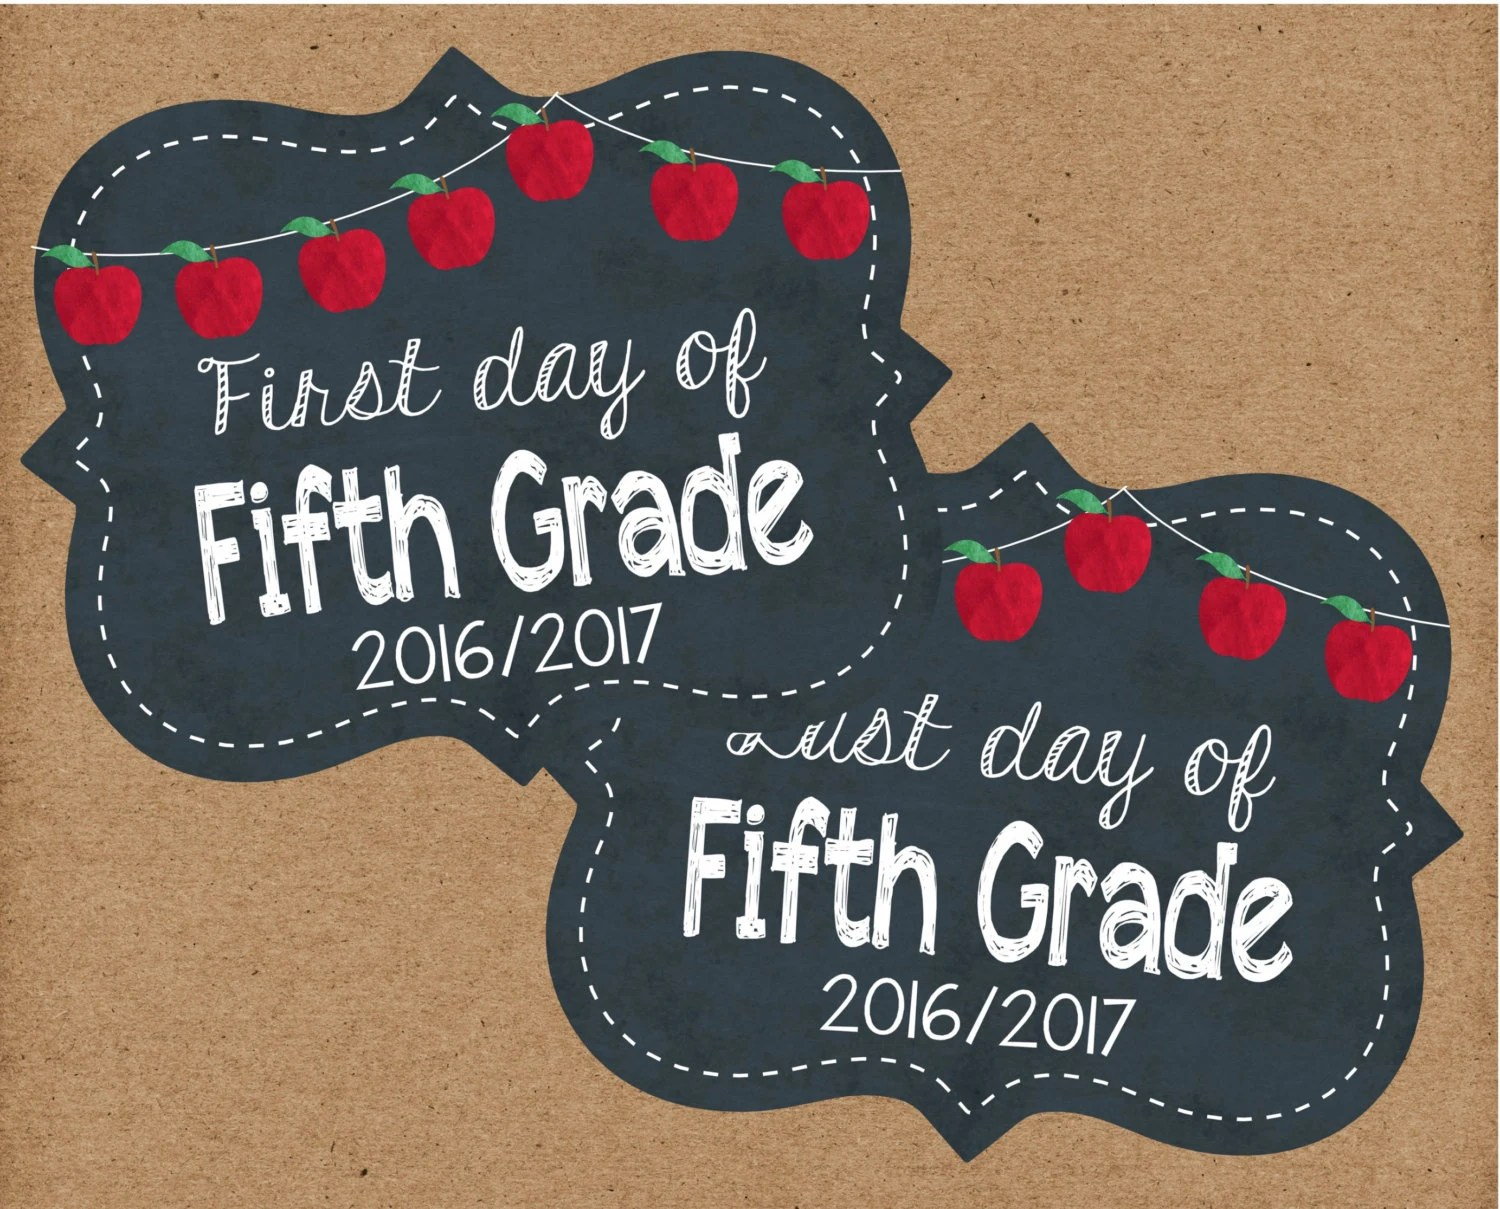 Fifth Grade First Day Of School Sign Firsy Day Back To School